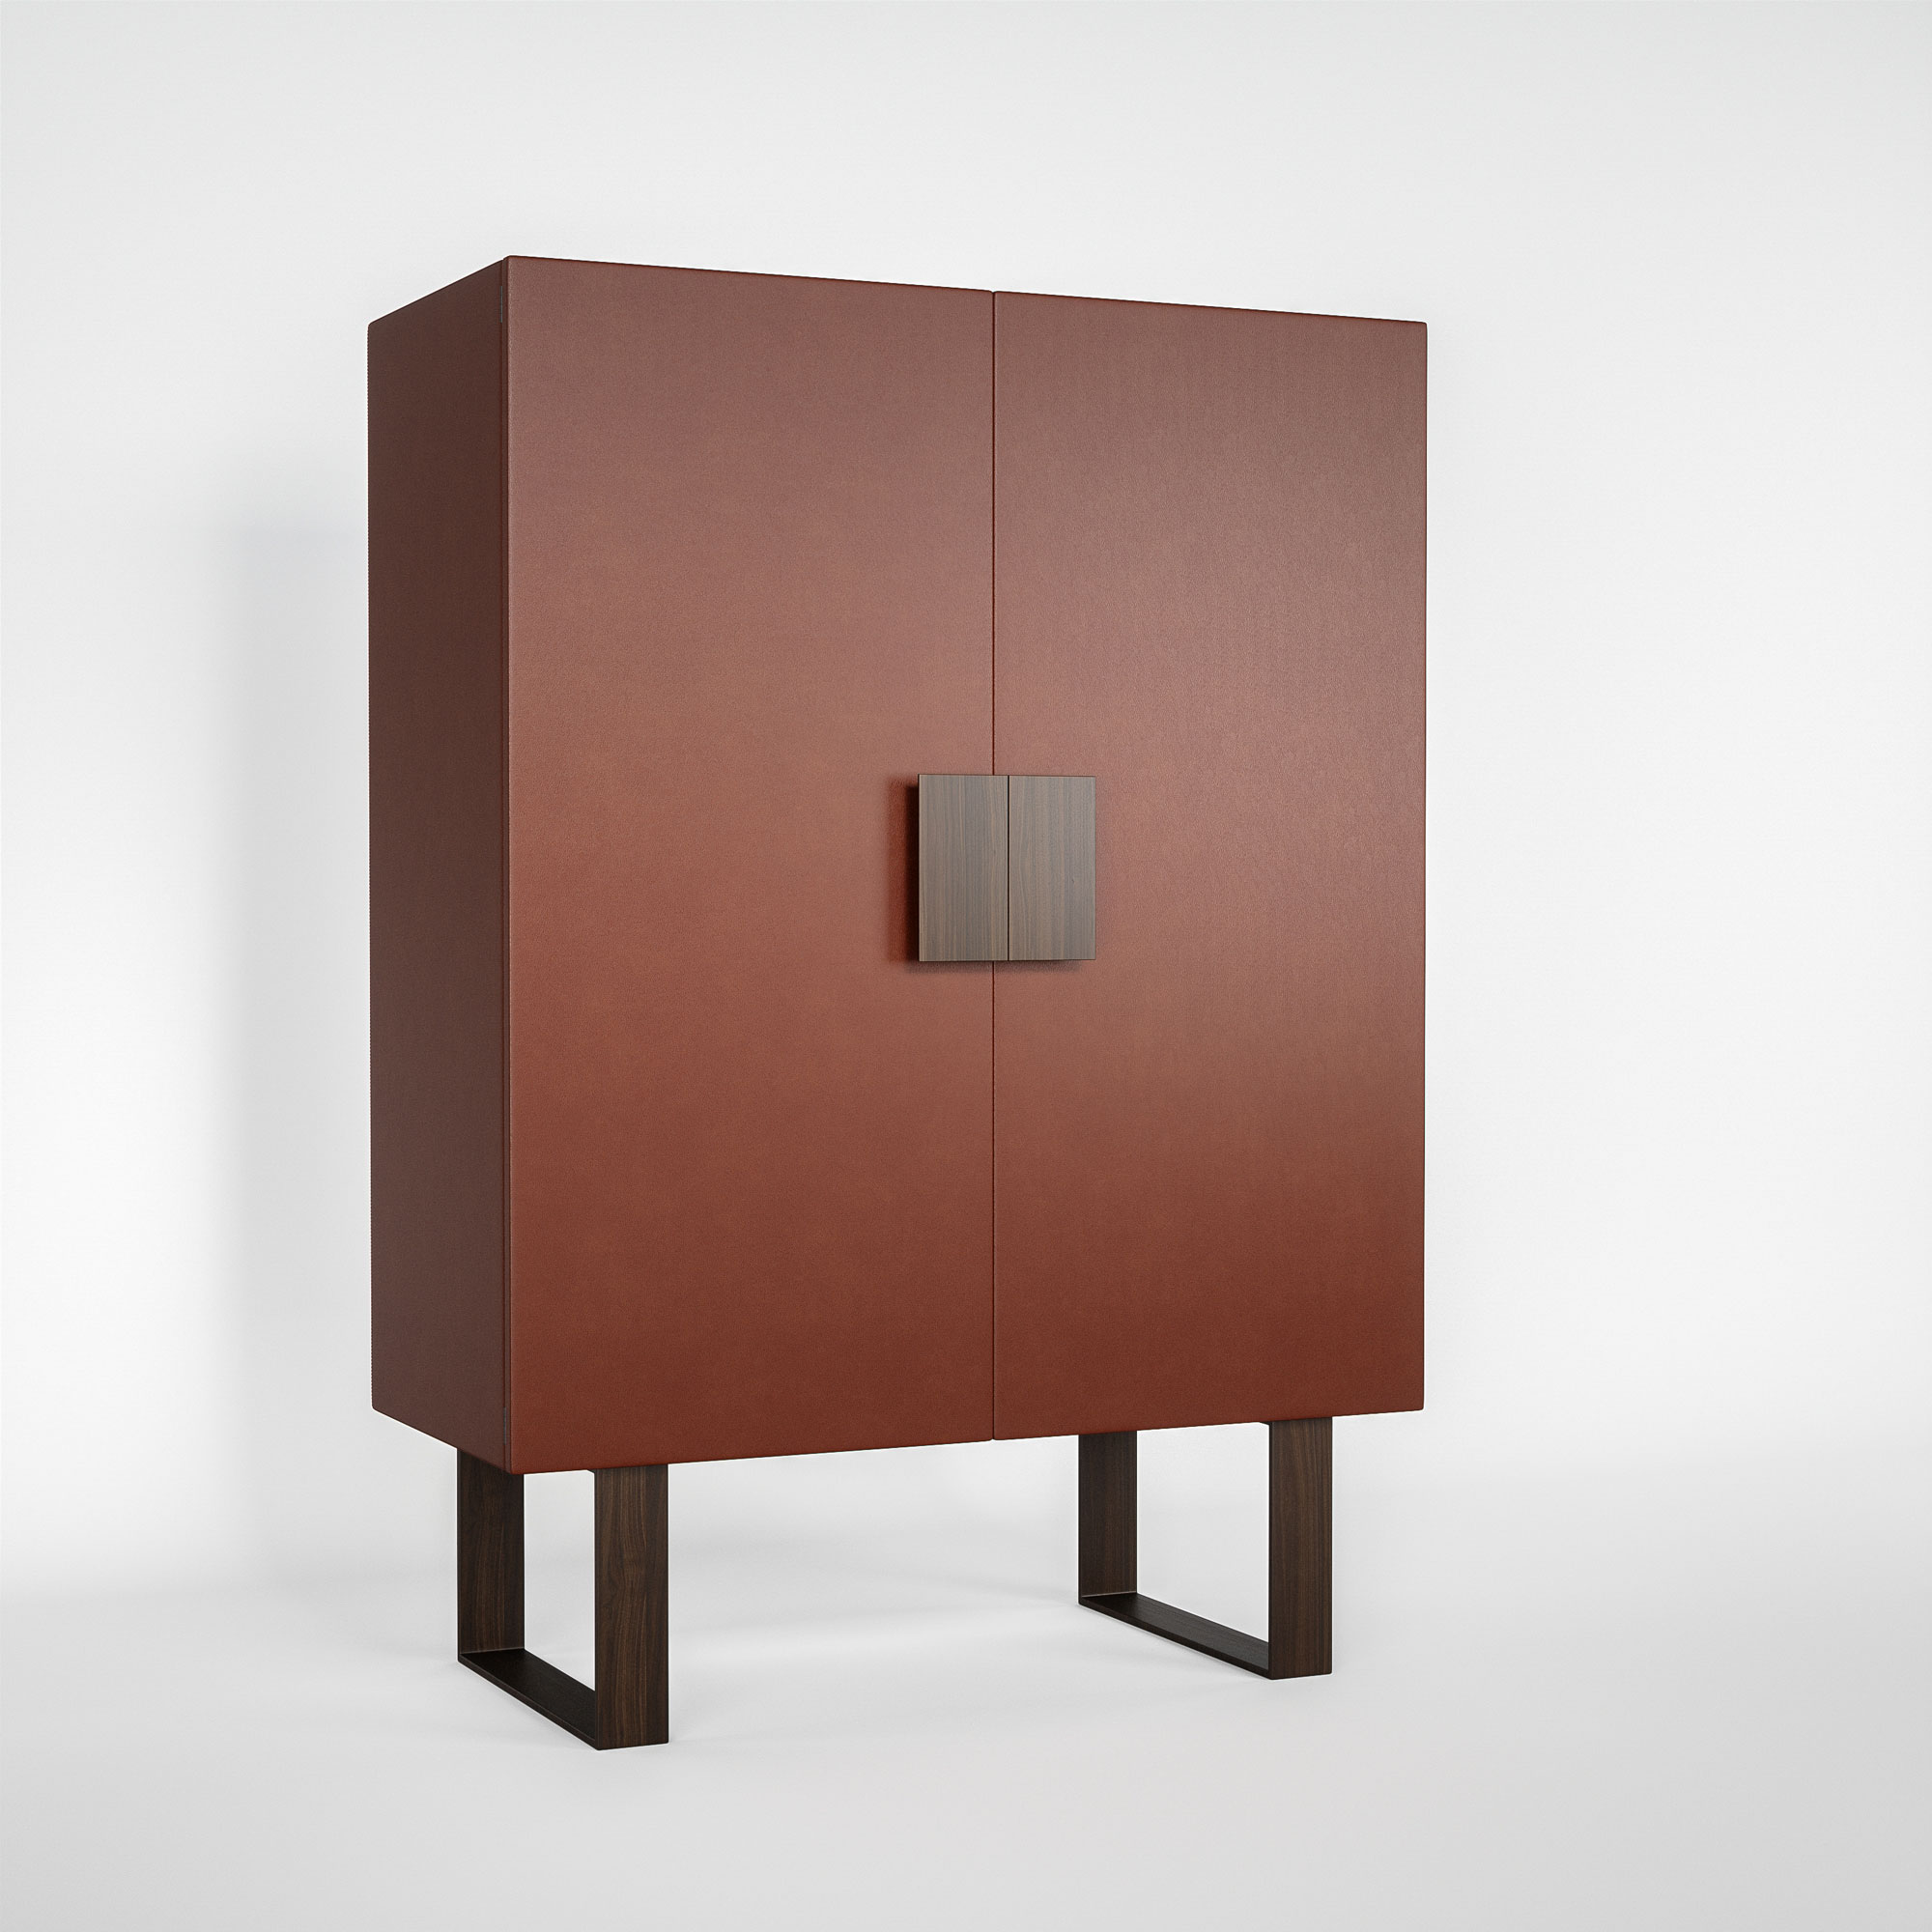 Organic tanned leather cabinet